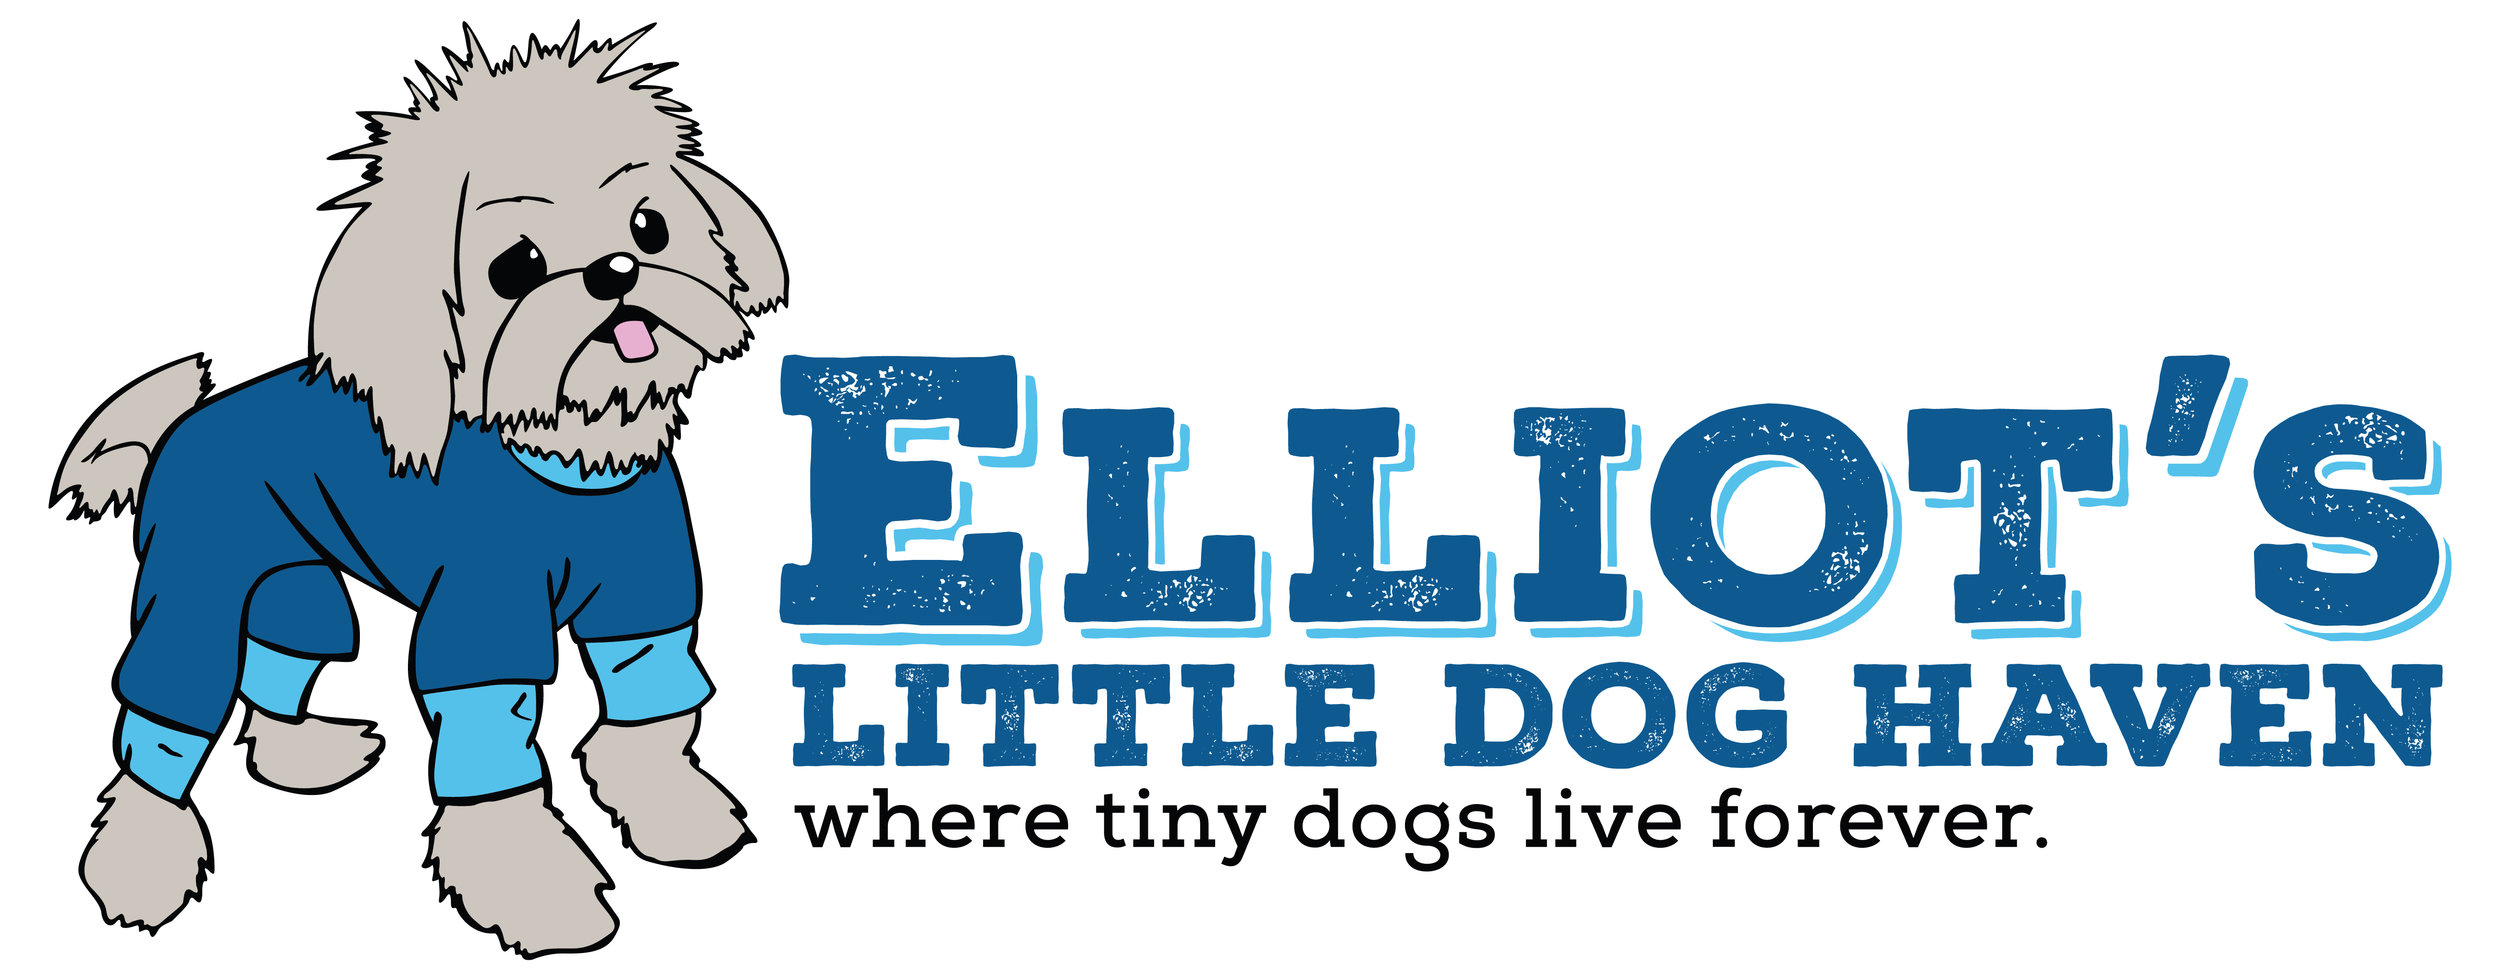 elliots_little_dog_haven_logo-01.jpg